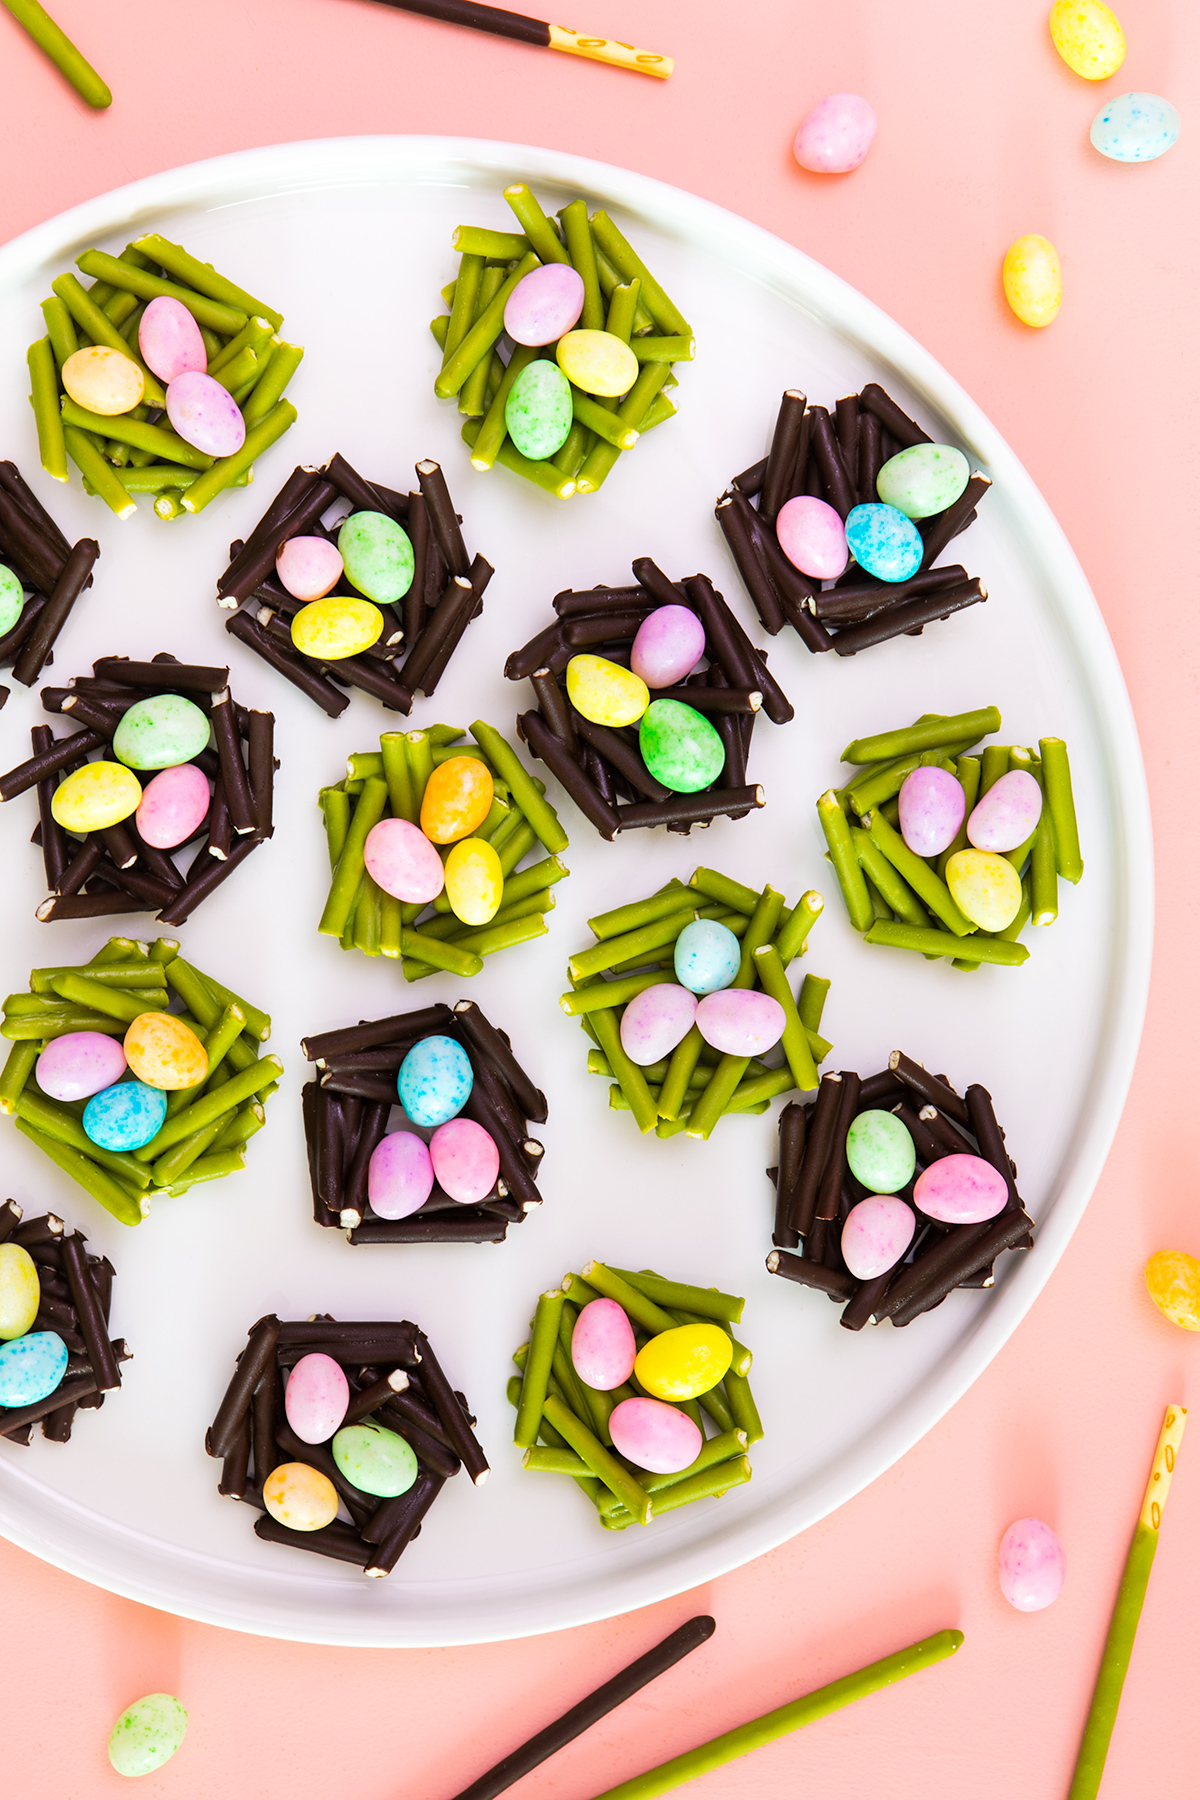 Top 20 Easter Projects of 2017 - Pocky Easter Nest Treats by Sarah Hearts | Squirrelly Minds